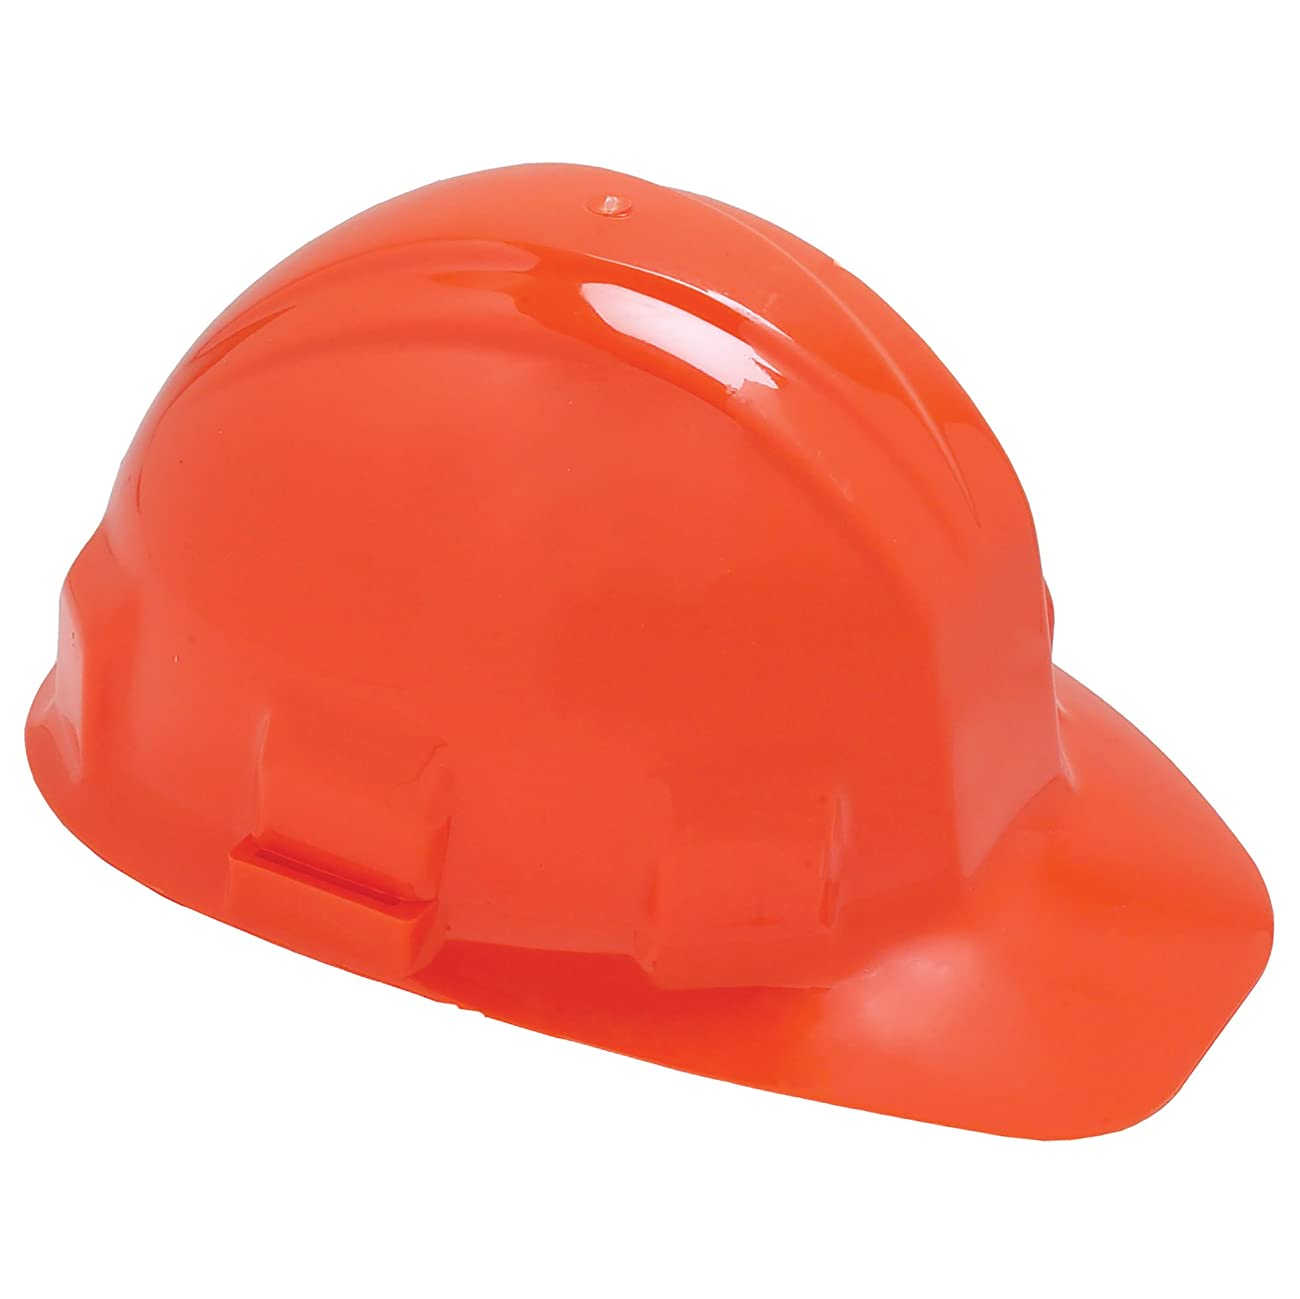 ラリーベルモントアイスクリーム信頼性のあるJackson Safety 14420 Sentry III High Density Polyethylene Hard Hat with 6 Point Ratchet Suspension, Orange (Pack of 12) by Jackson Safety